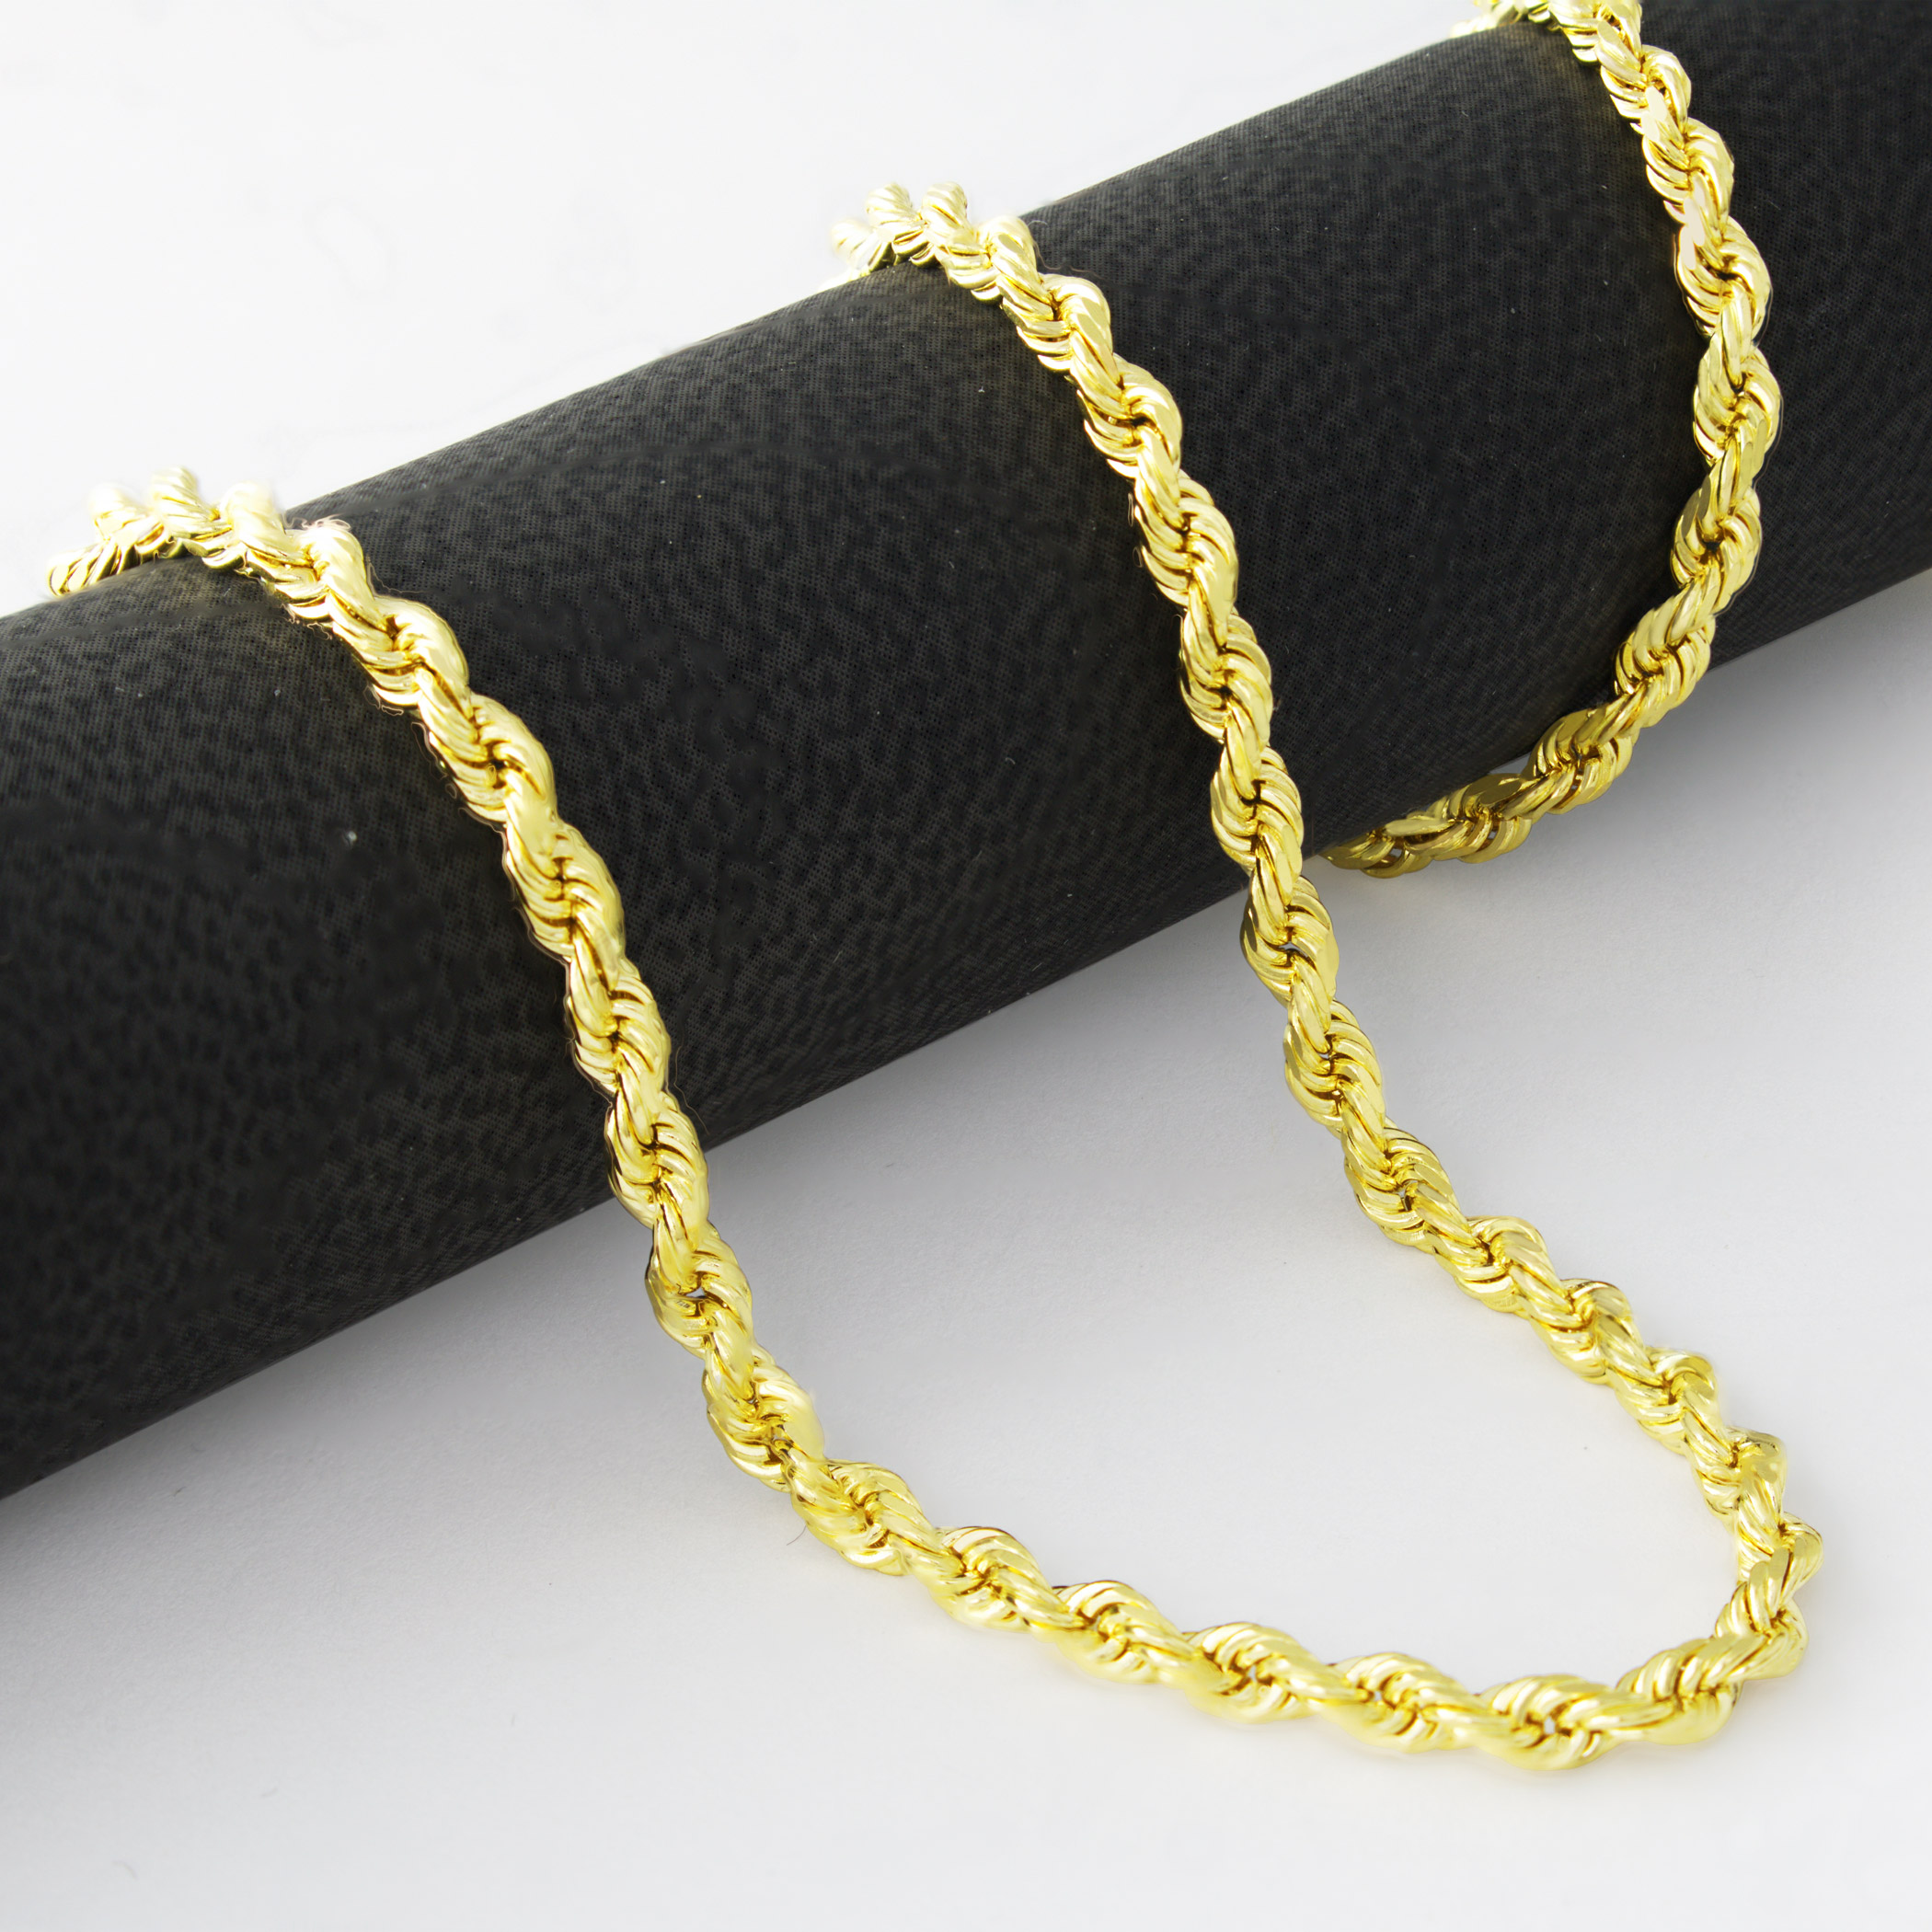 10K-Yellow-Gold-Real-3mm-Diamond-Cut-Rope-Chain-Bracelet-Lobster-Clasp-7-034-8-034-9-034 thumbnail 18